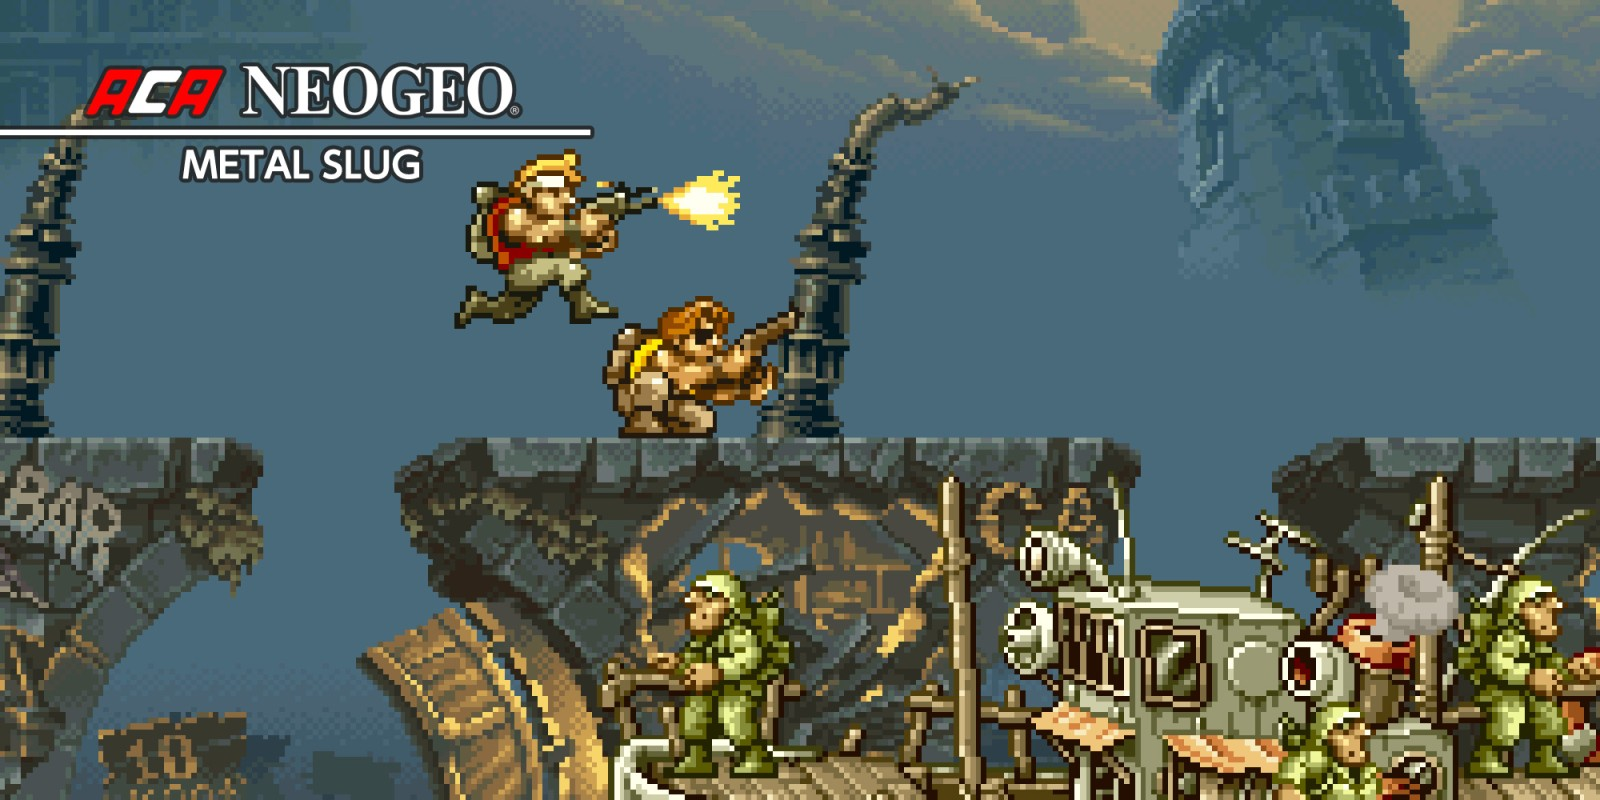 Aca Neogeo Metal Slug Nintendo Switch Download Software